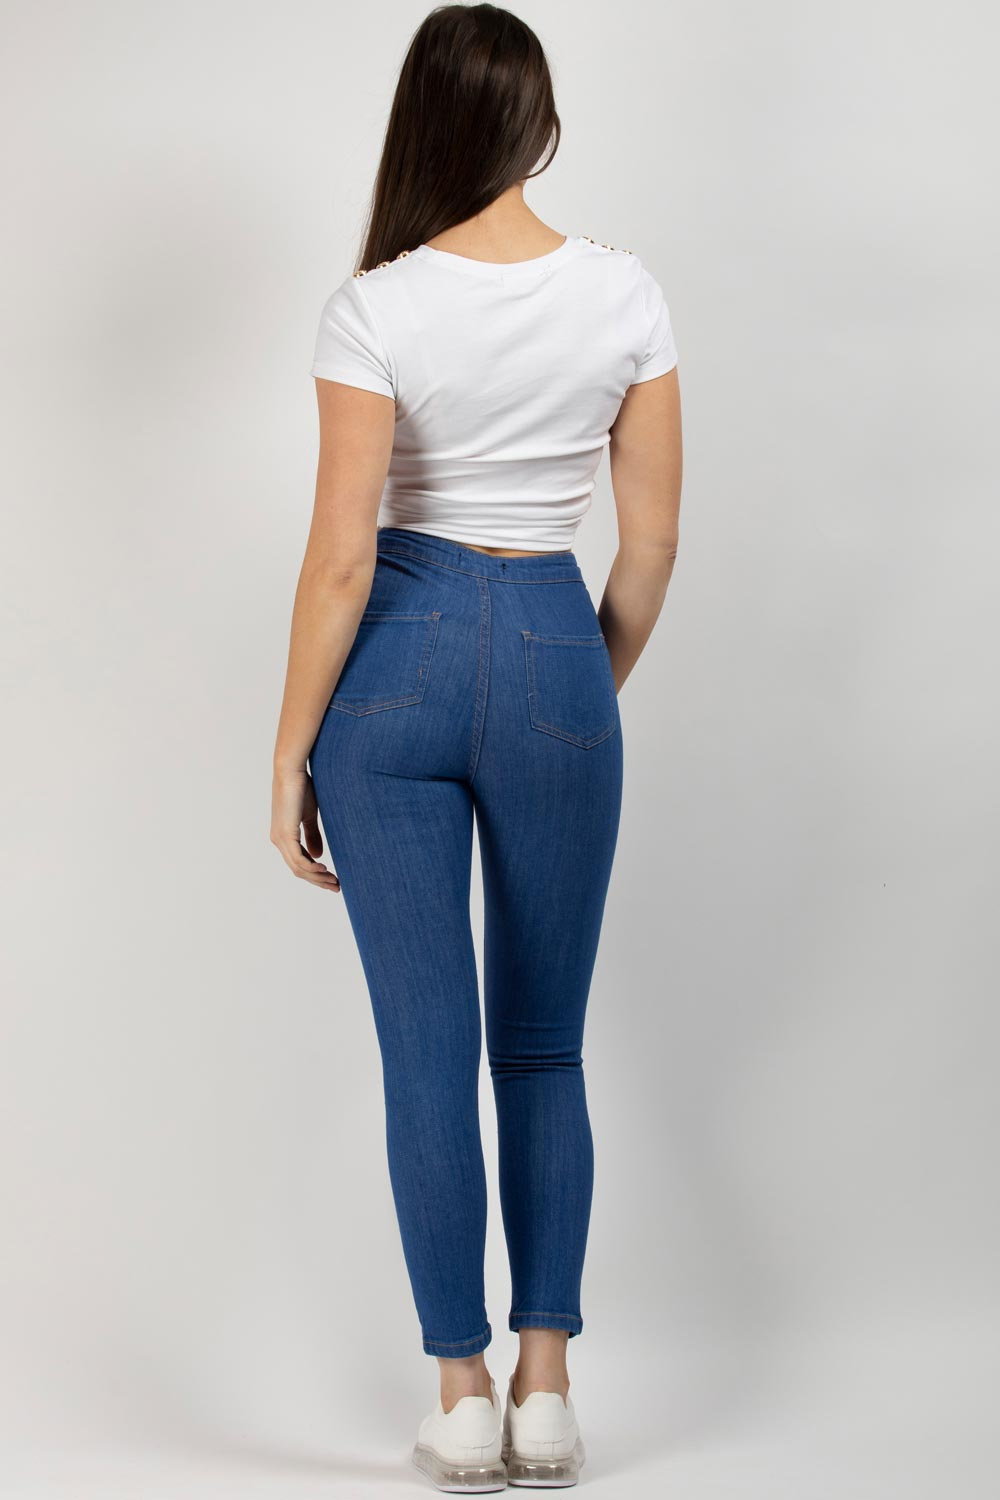 Mid Wash Blue Multi Rip High Waist Skinny Jeans